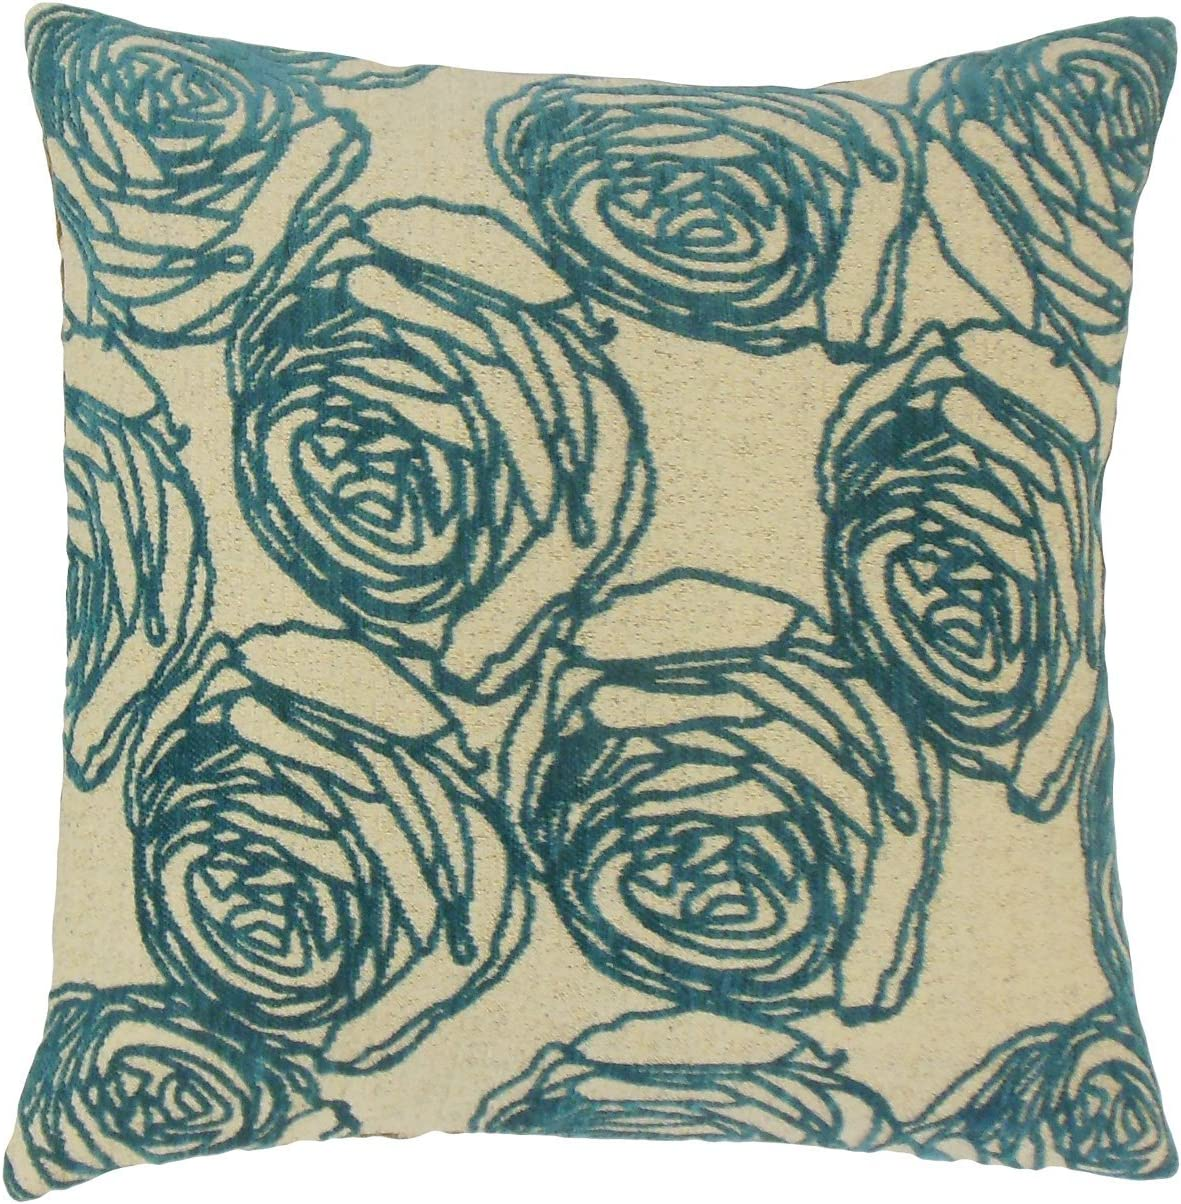 The Pillow Collection Ilaria Max 68% OFF New Free Shipping Cover Floral Throw